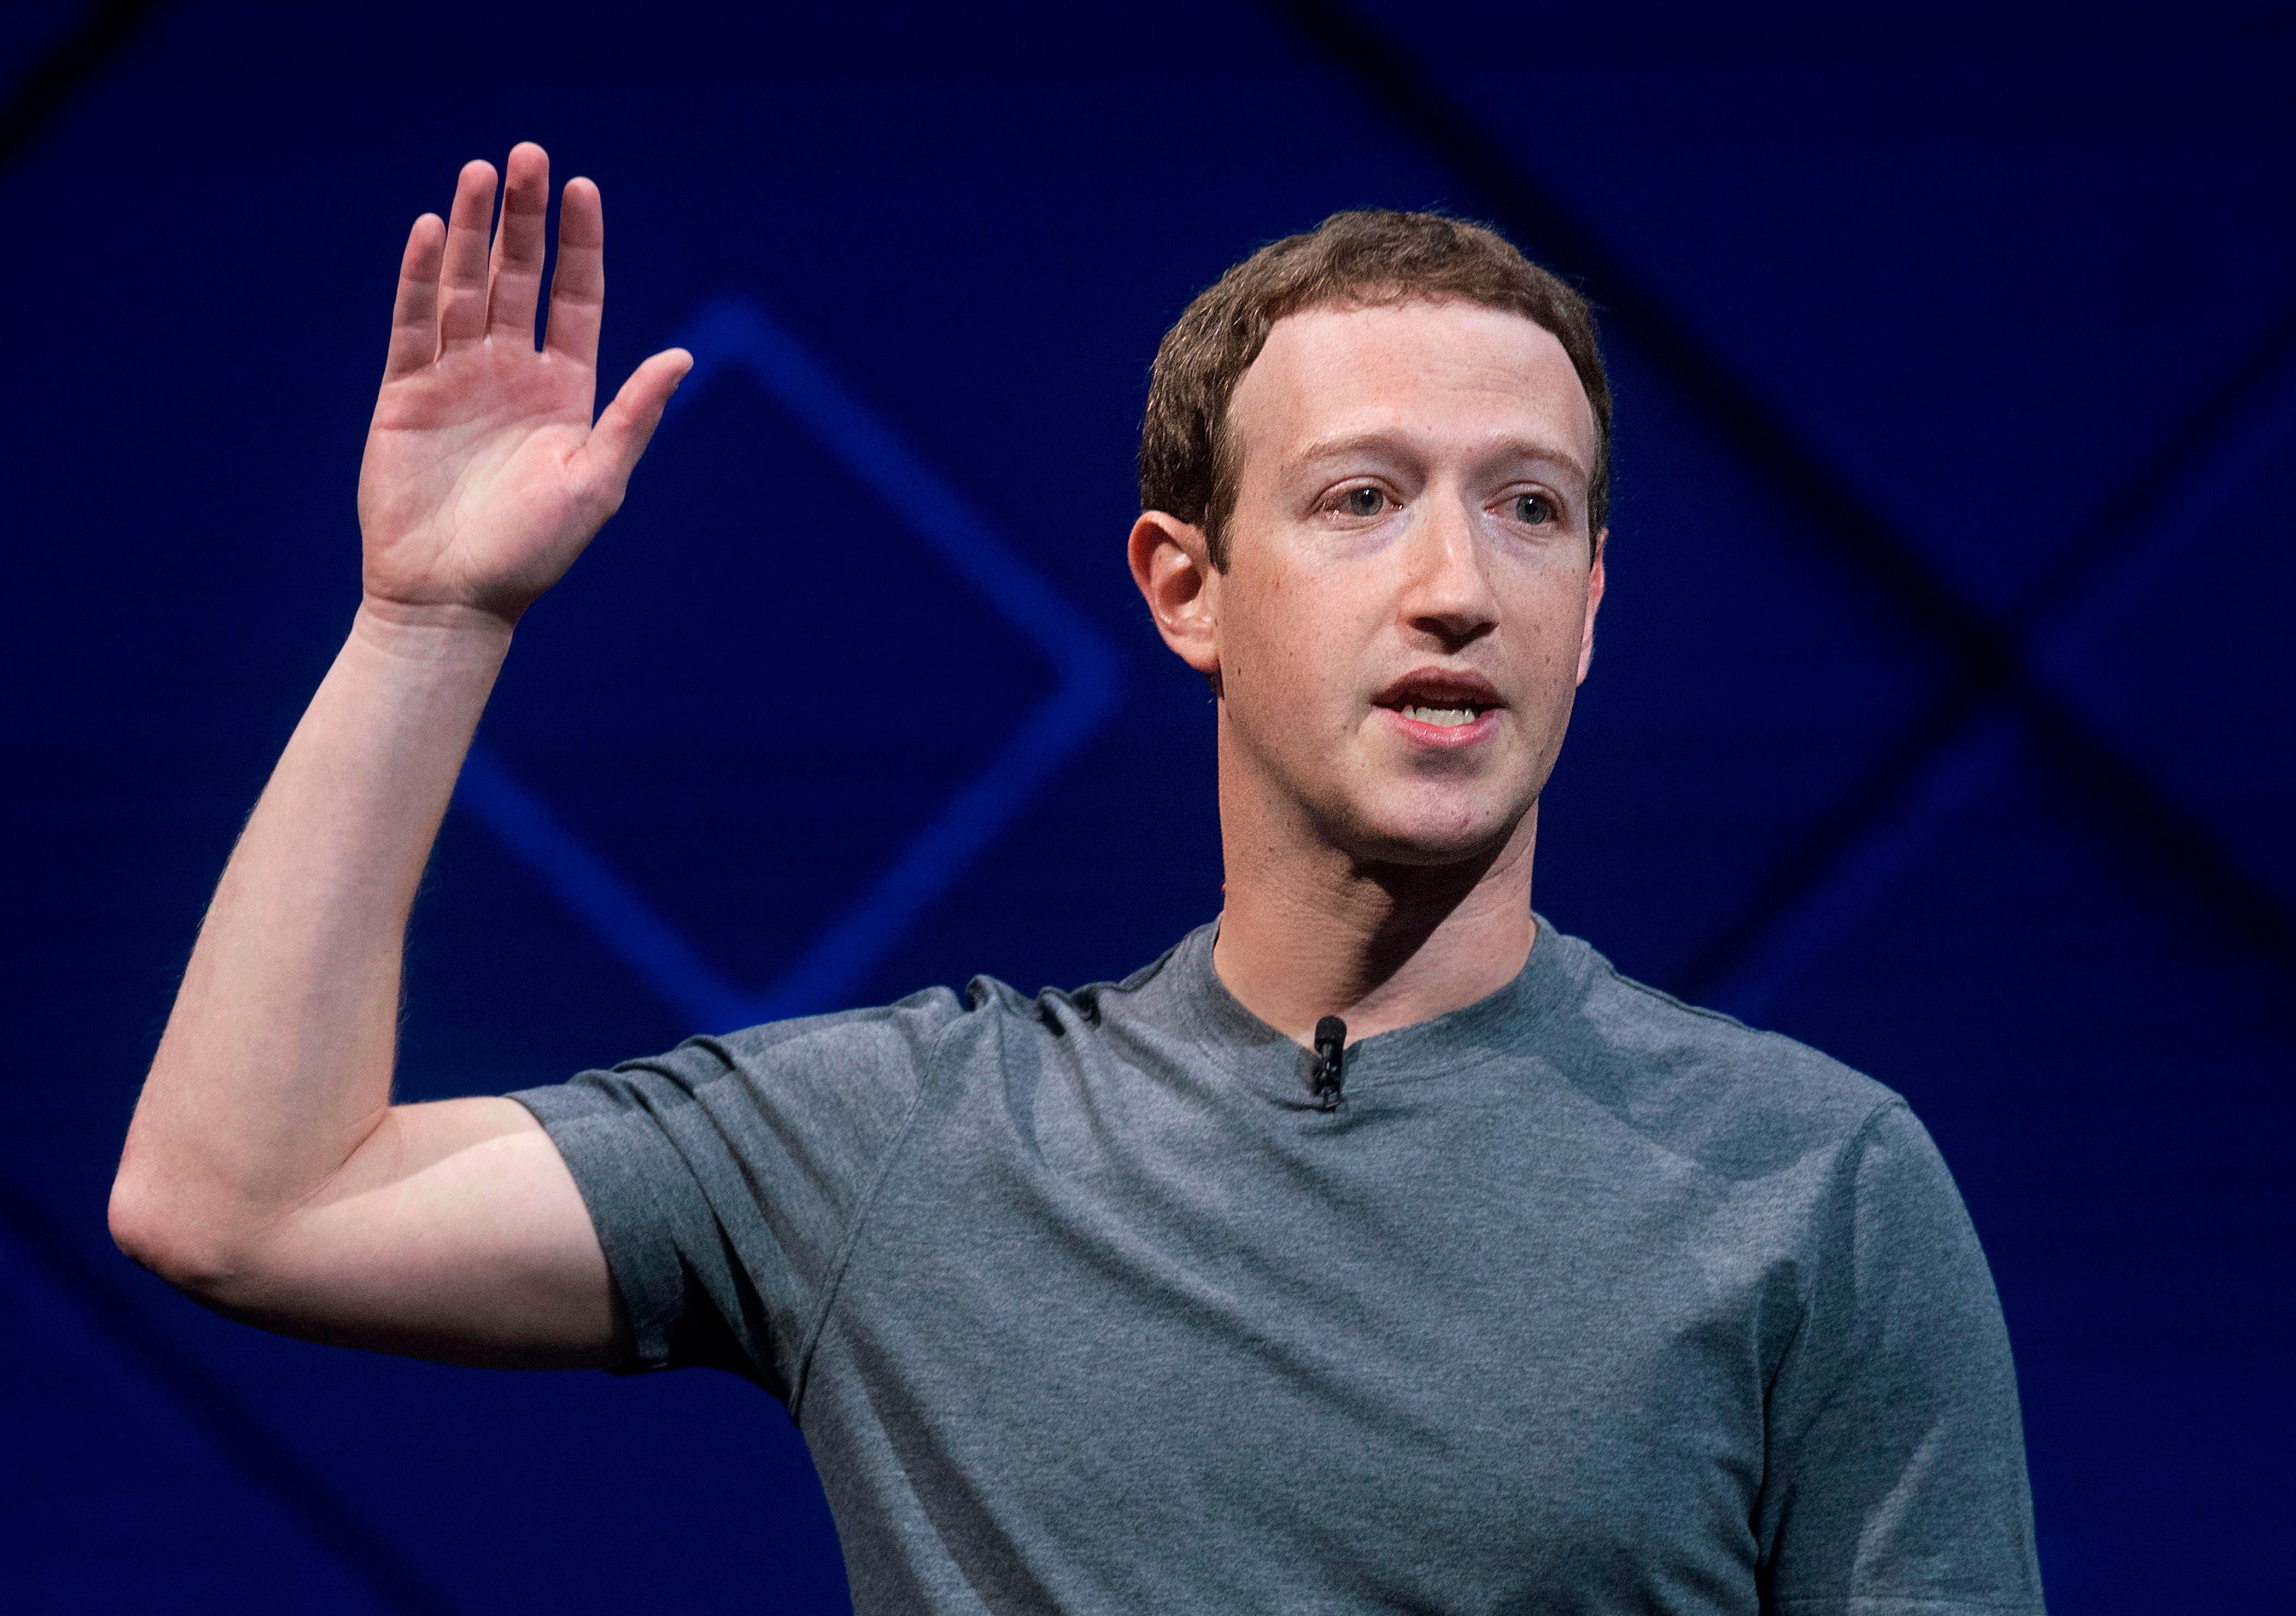 In this April 18, 2017 file photo, Facebook CEO Mark Zuckerberg speaks at his company's annual F8 developer conference in San Jose, Calif. The leaders of a key House oversight committee say Zuckerberg will testify before their panel on April 11. (AP Photo/Noah Berger, file)